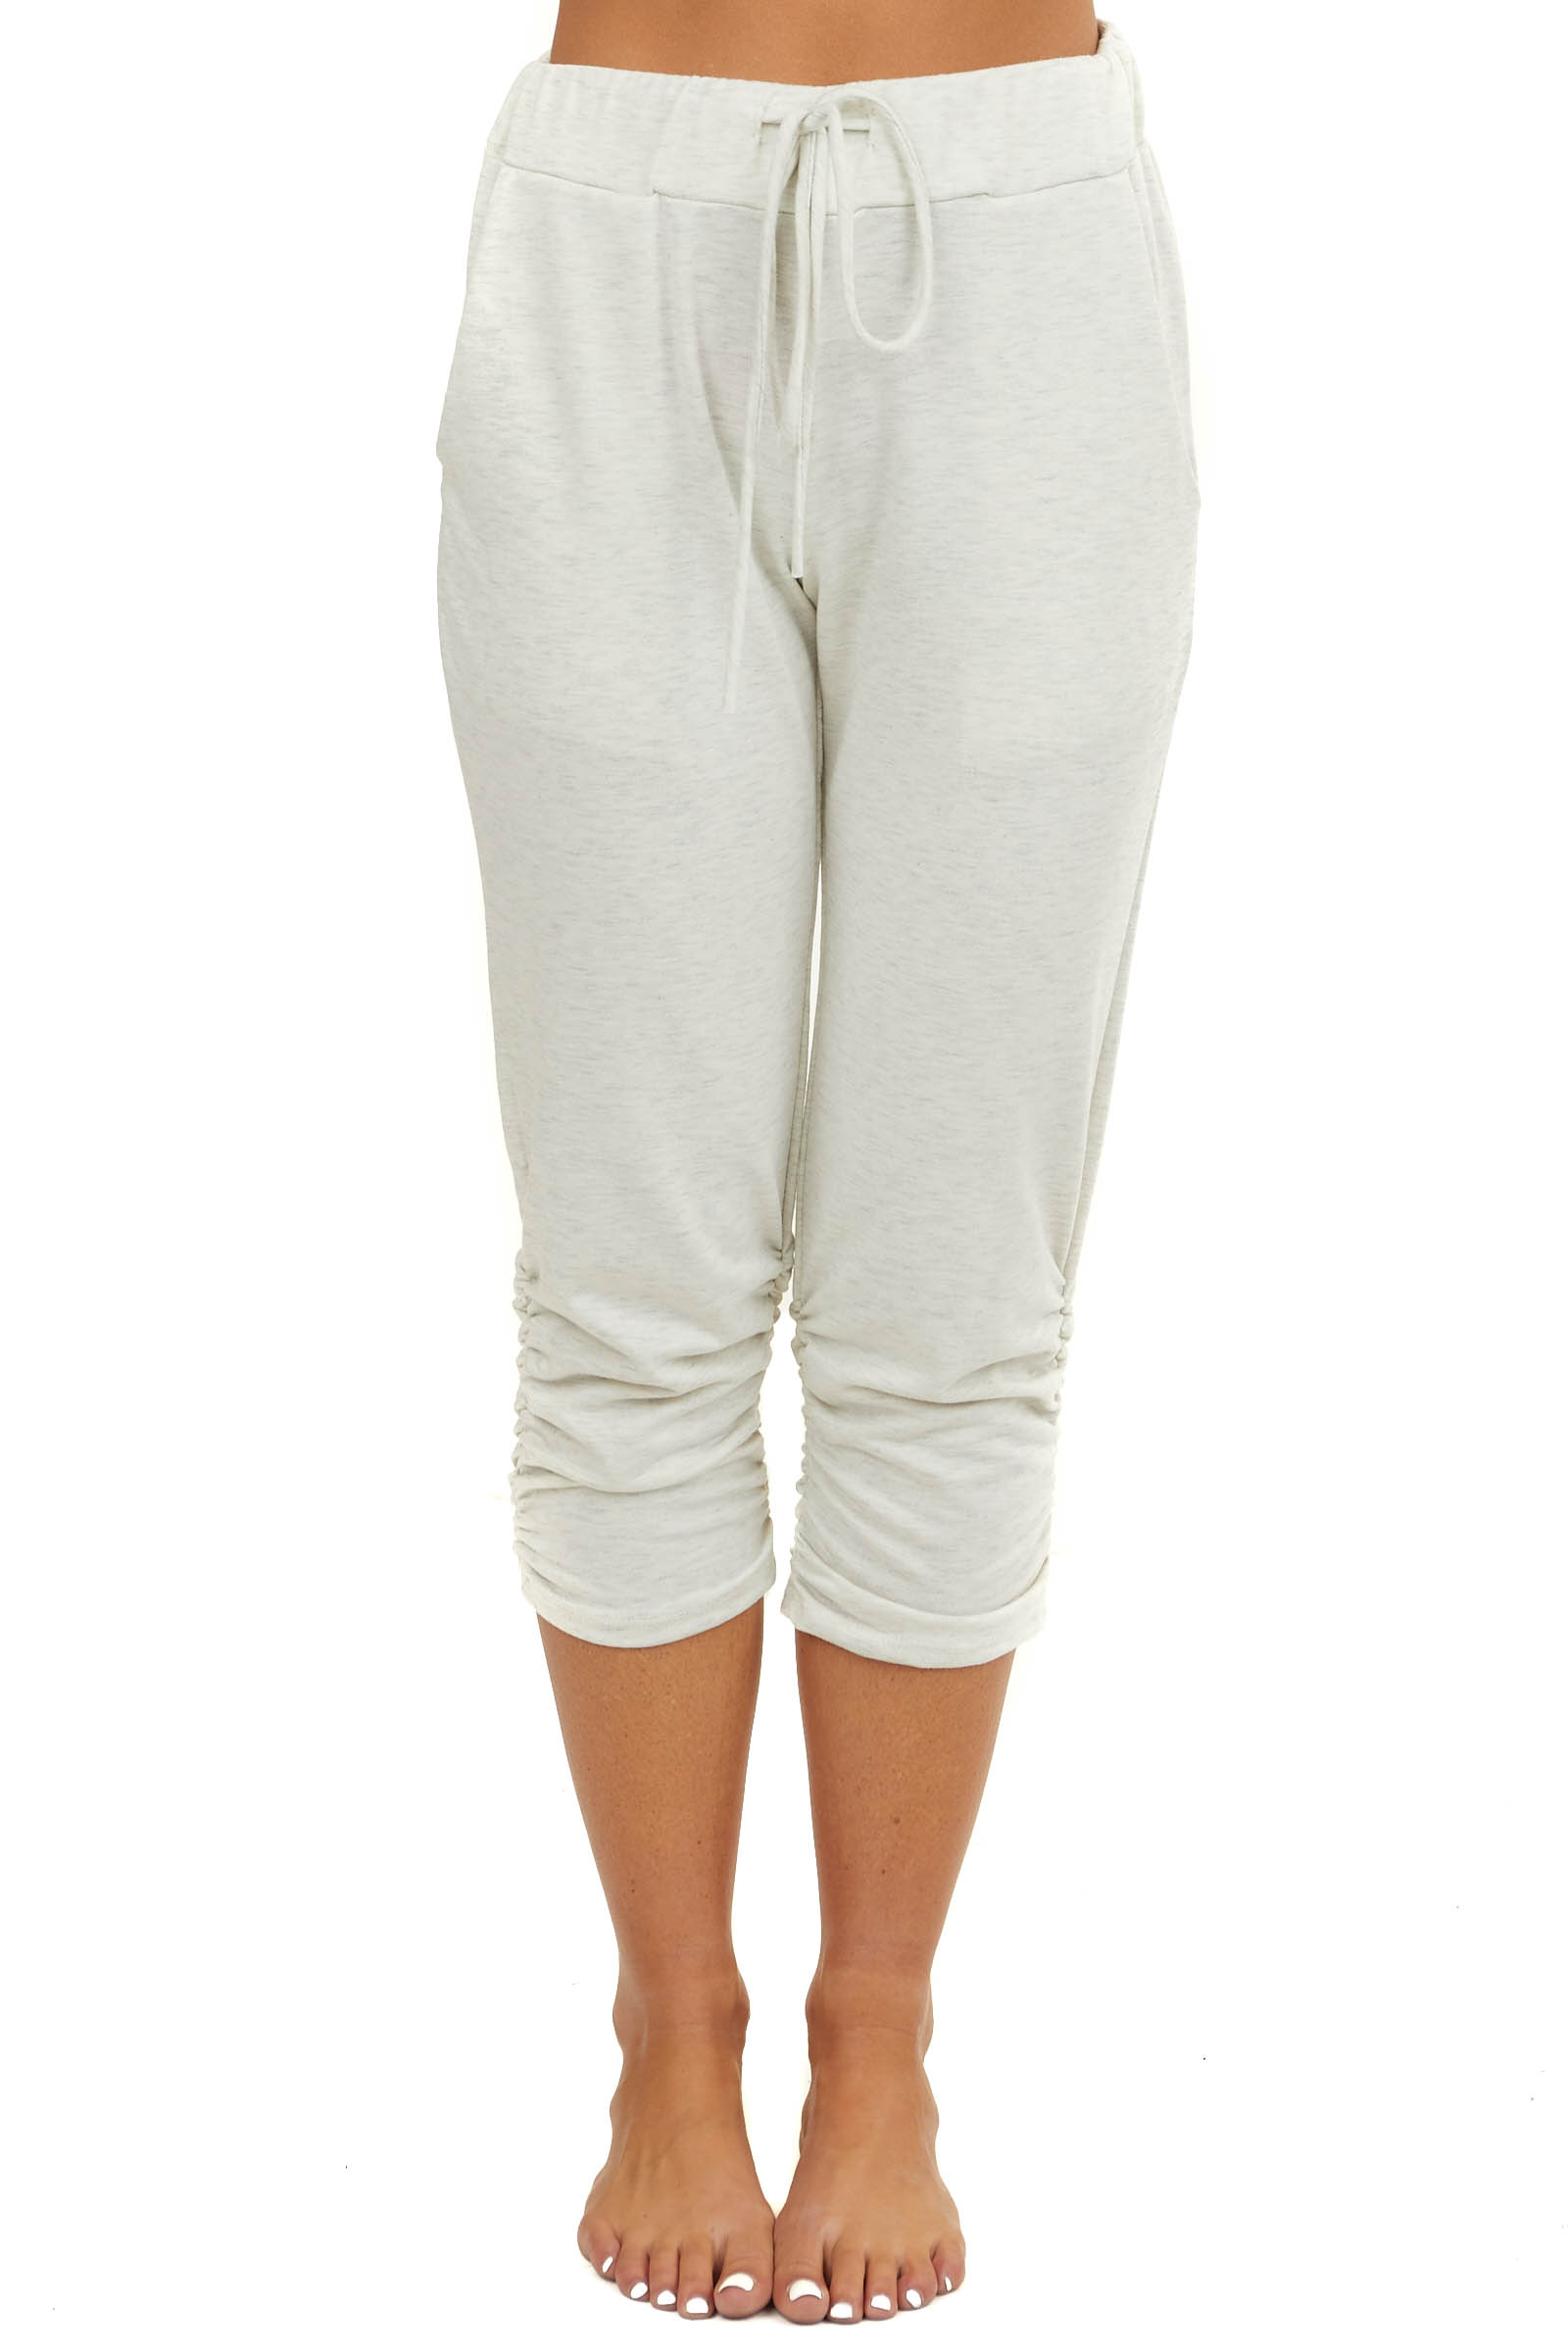 Cream Ruched Capri Joggers with Waist Tie and Pockets